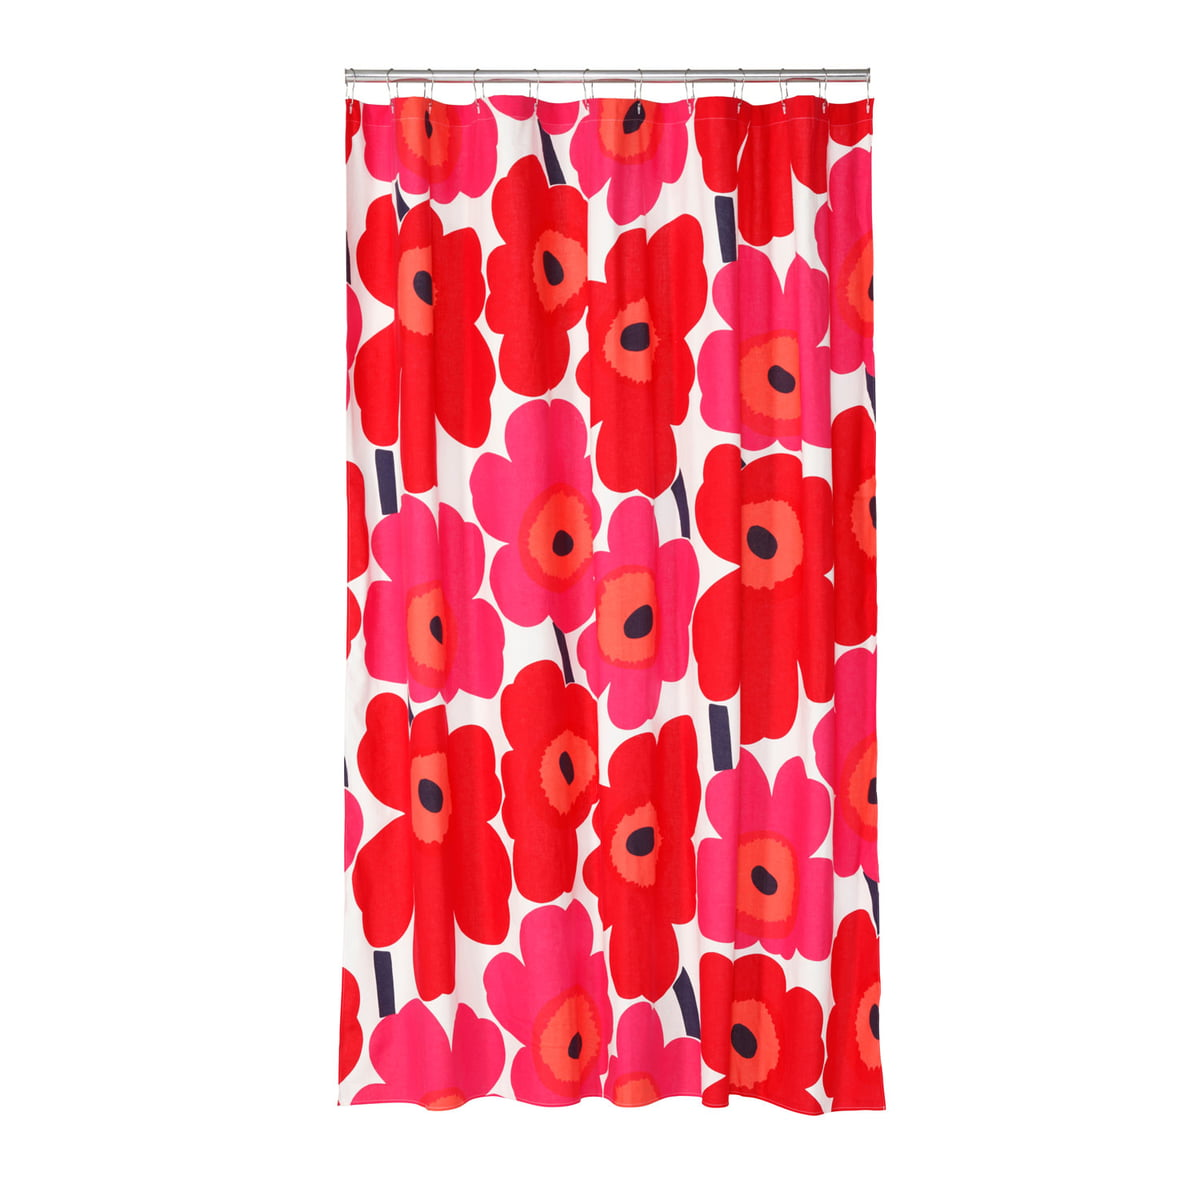 The Unikko Shower Curtain By Marimekko